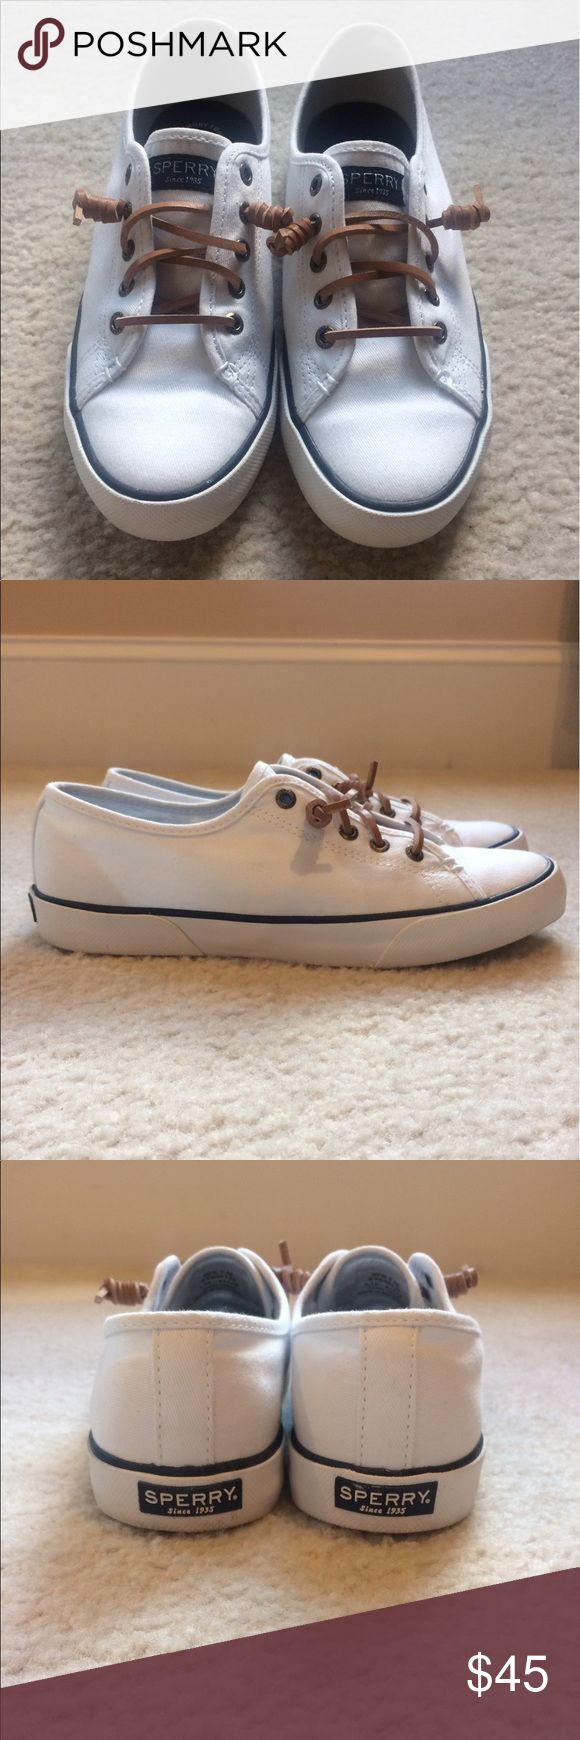 Sperry Top-Sider shoes Women's Sperry Top-Sider Pier View Core, white, size 7. Only worn two times. Still has original box. I have wide feet and these were too narrow for me, so it would fit perfect for someone with normal/narrow feet! Sperry Top-Sider Shoes Flats & Loafers